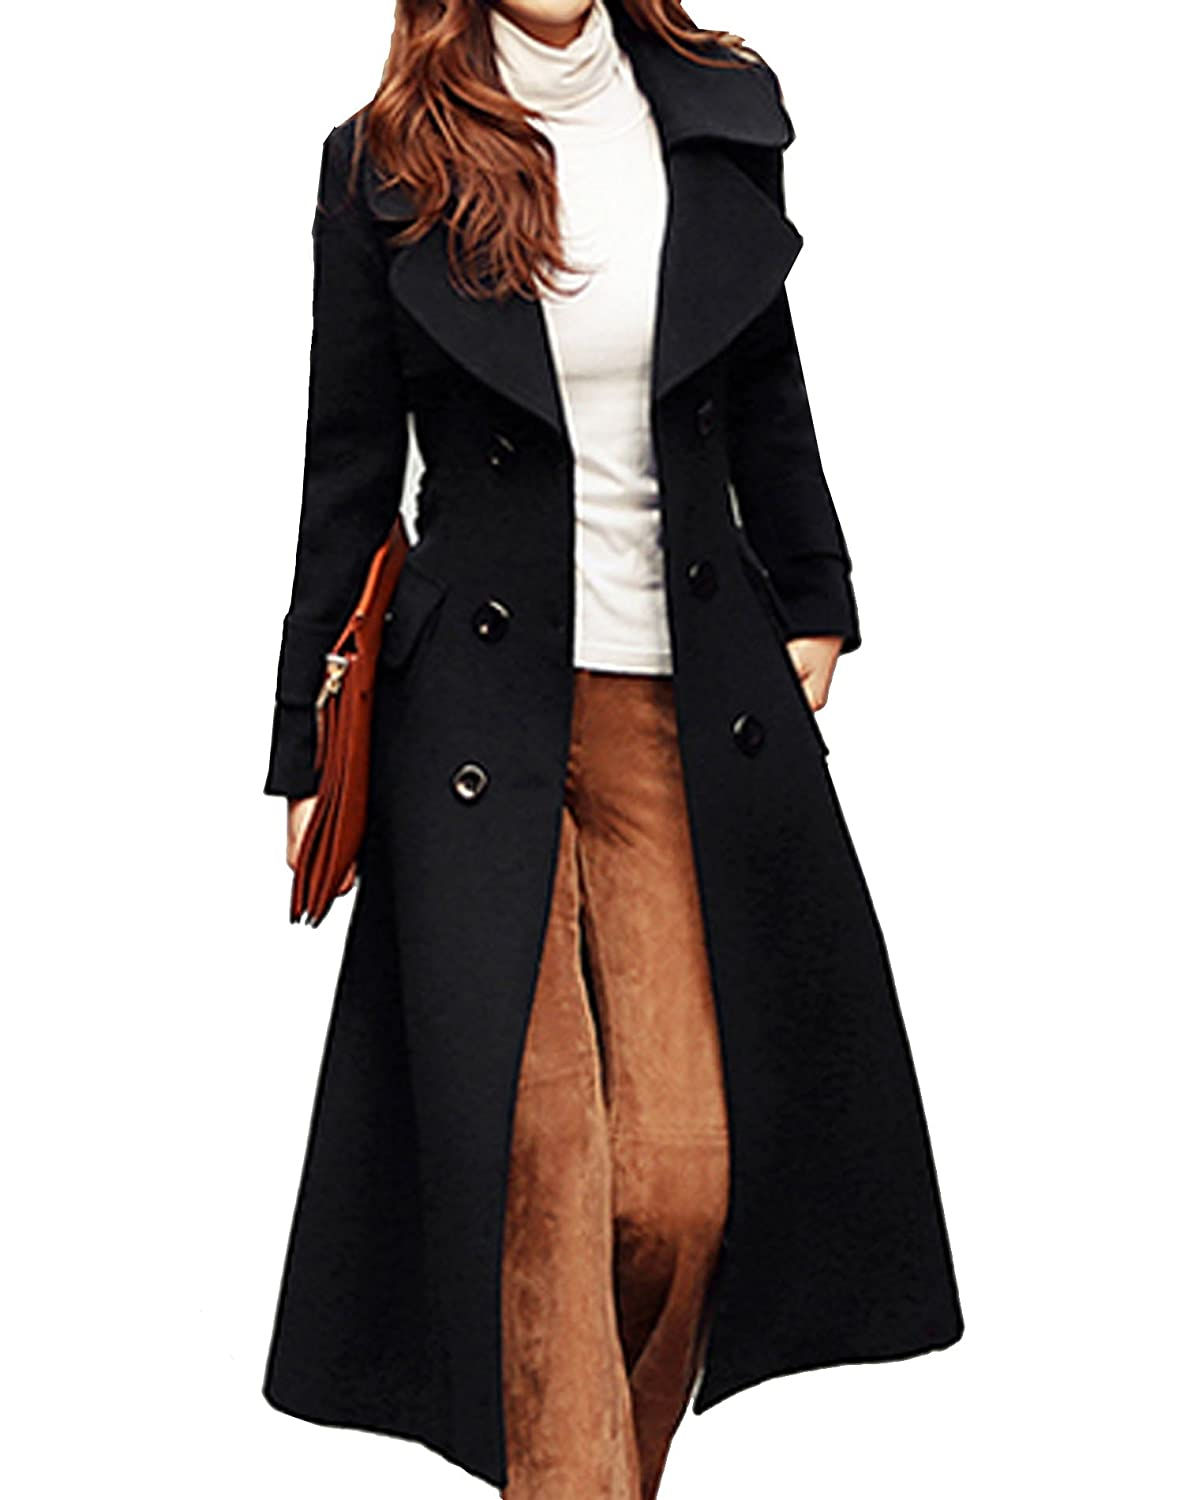 4905366121 Amazon.com  S S Women Trendy Sexy Lapel Solid Belted Woolen Outwear Long  Dress Trench Coat  Clothing